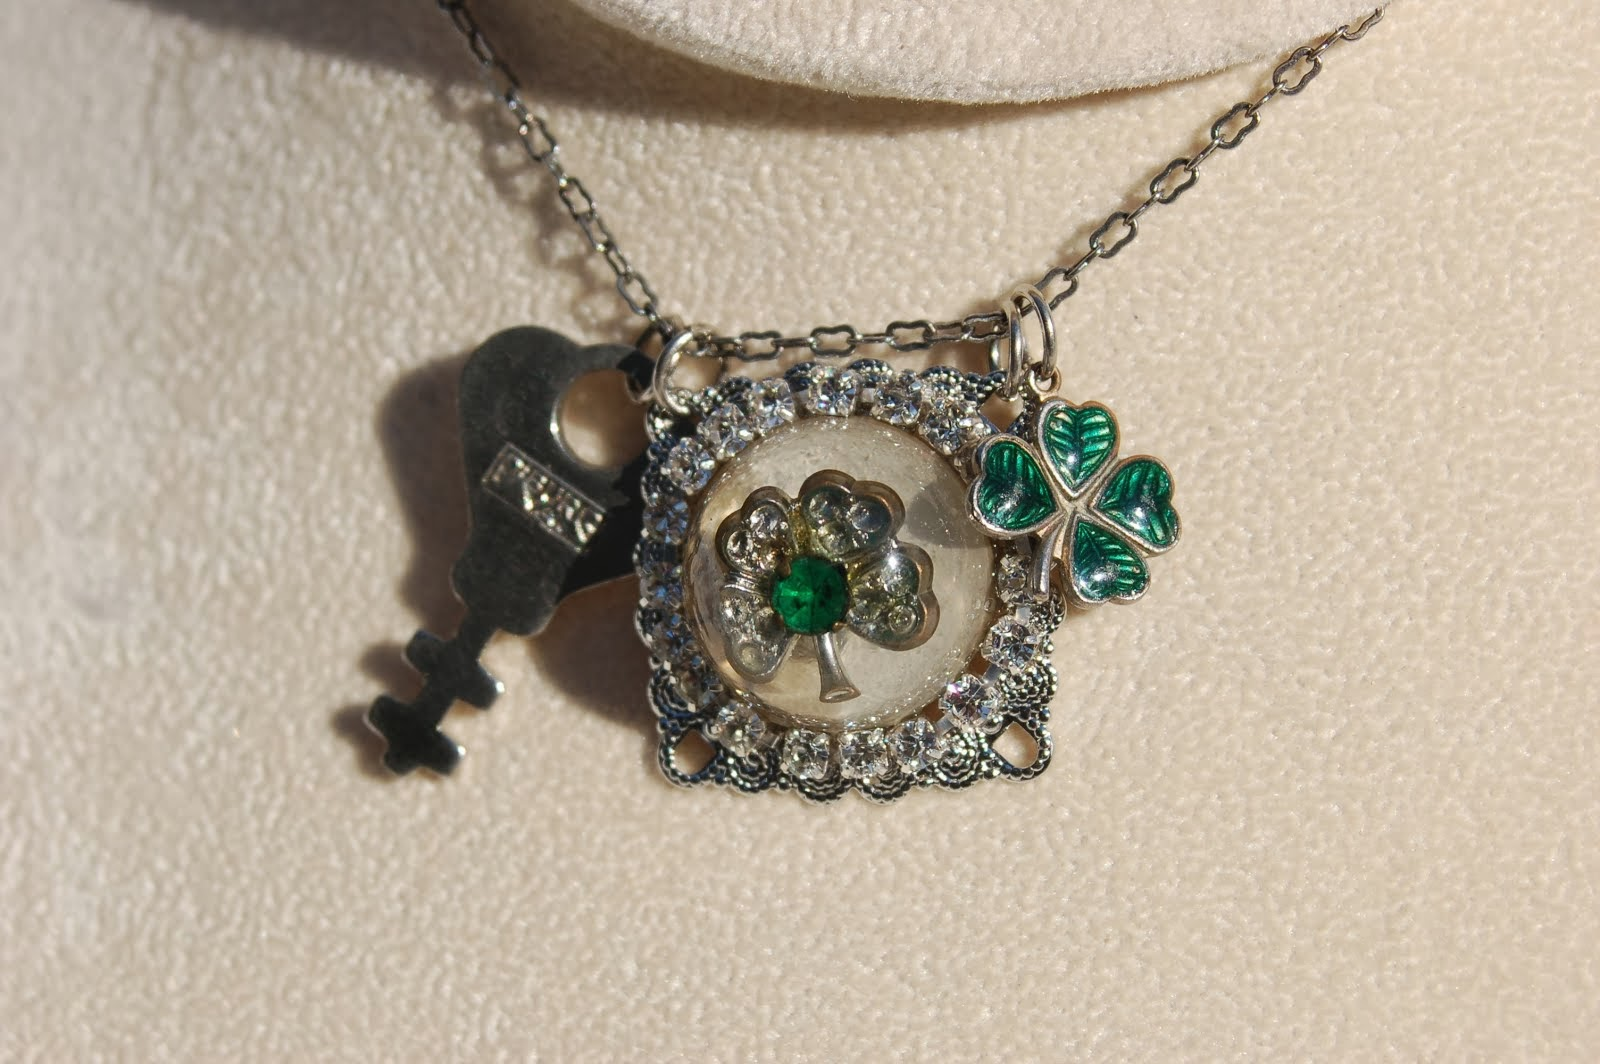 Necklace with clover earring cast in resin